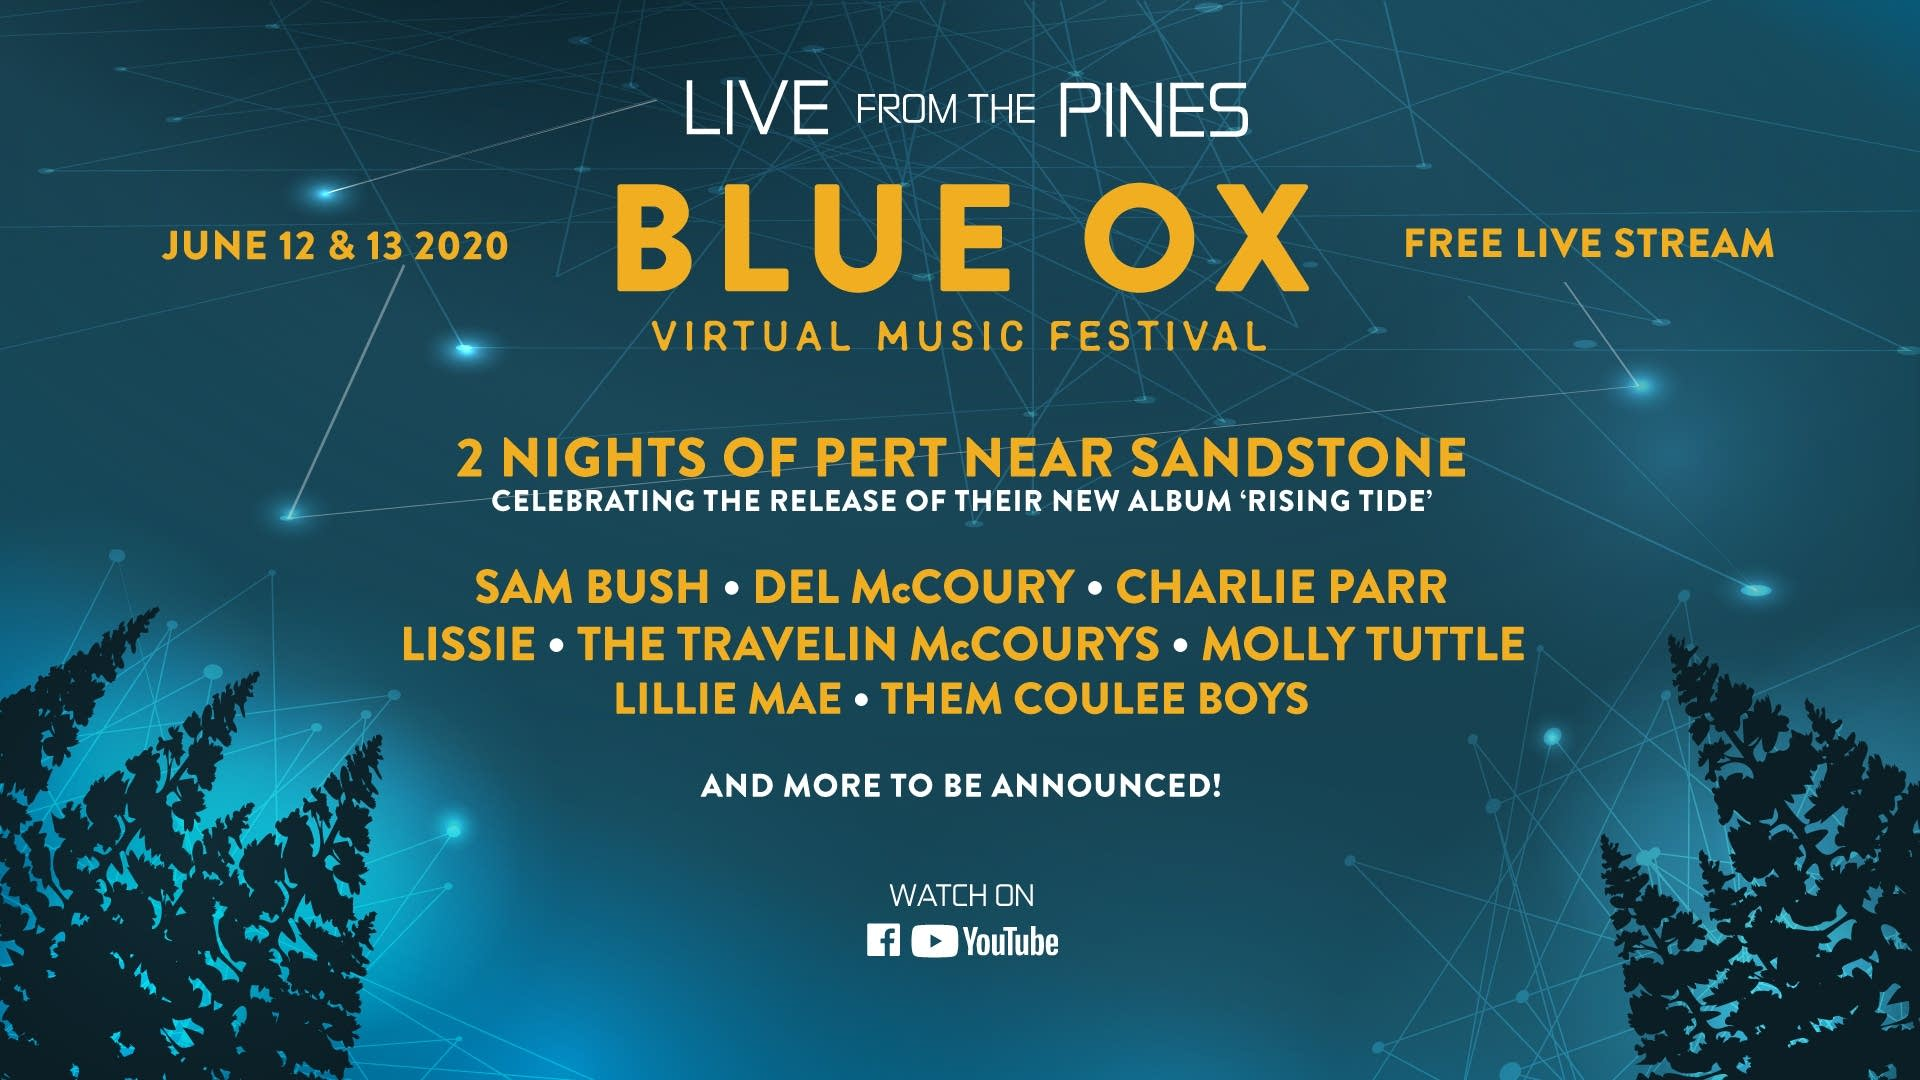 Blue Ox Virtual Music Festival